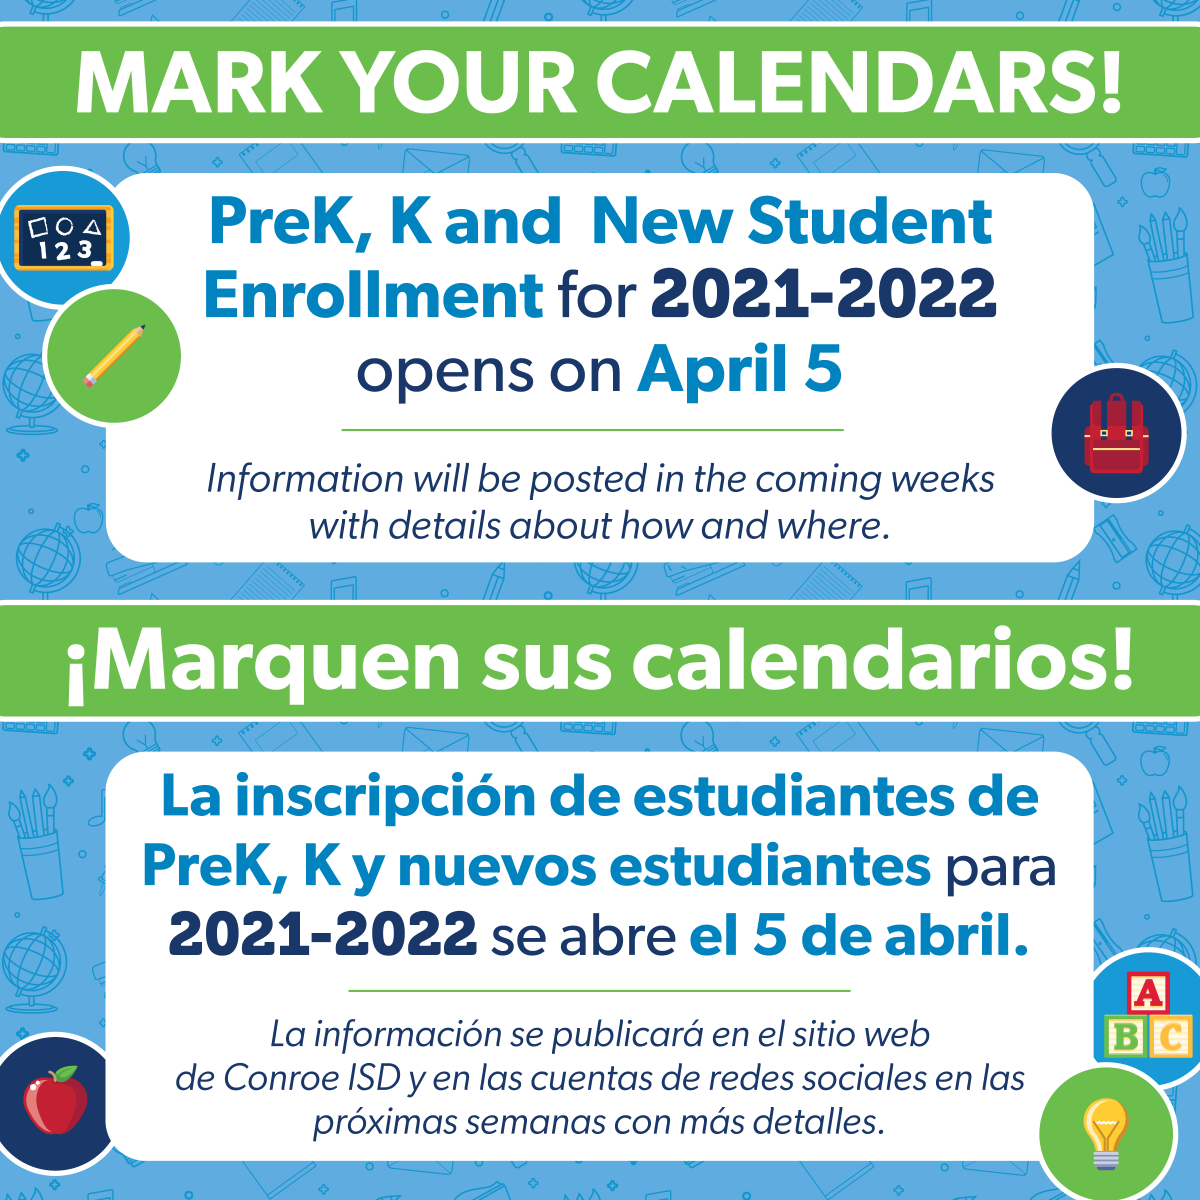 Conroe Isd Calendar 2022.Conroe Isd On Twitter Mark Your Calendars Prek K New Student Enrollment For 2021 2022 Opens On April 5 Information Will Be Posted On The Conroe Isd Website And Social Media Accounts